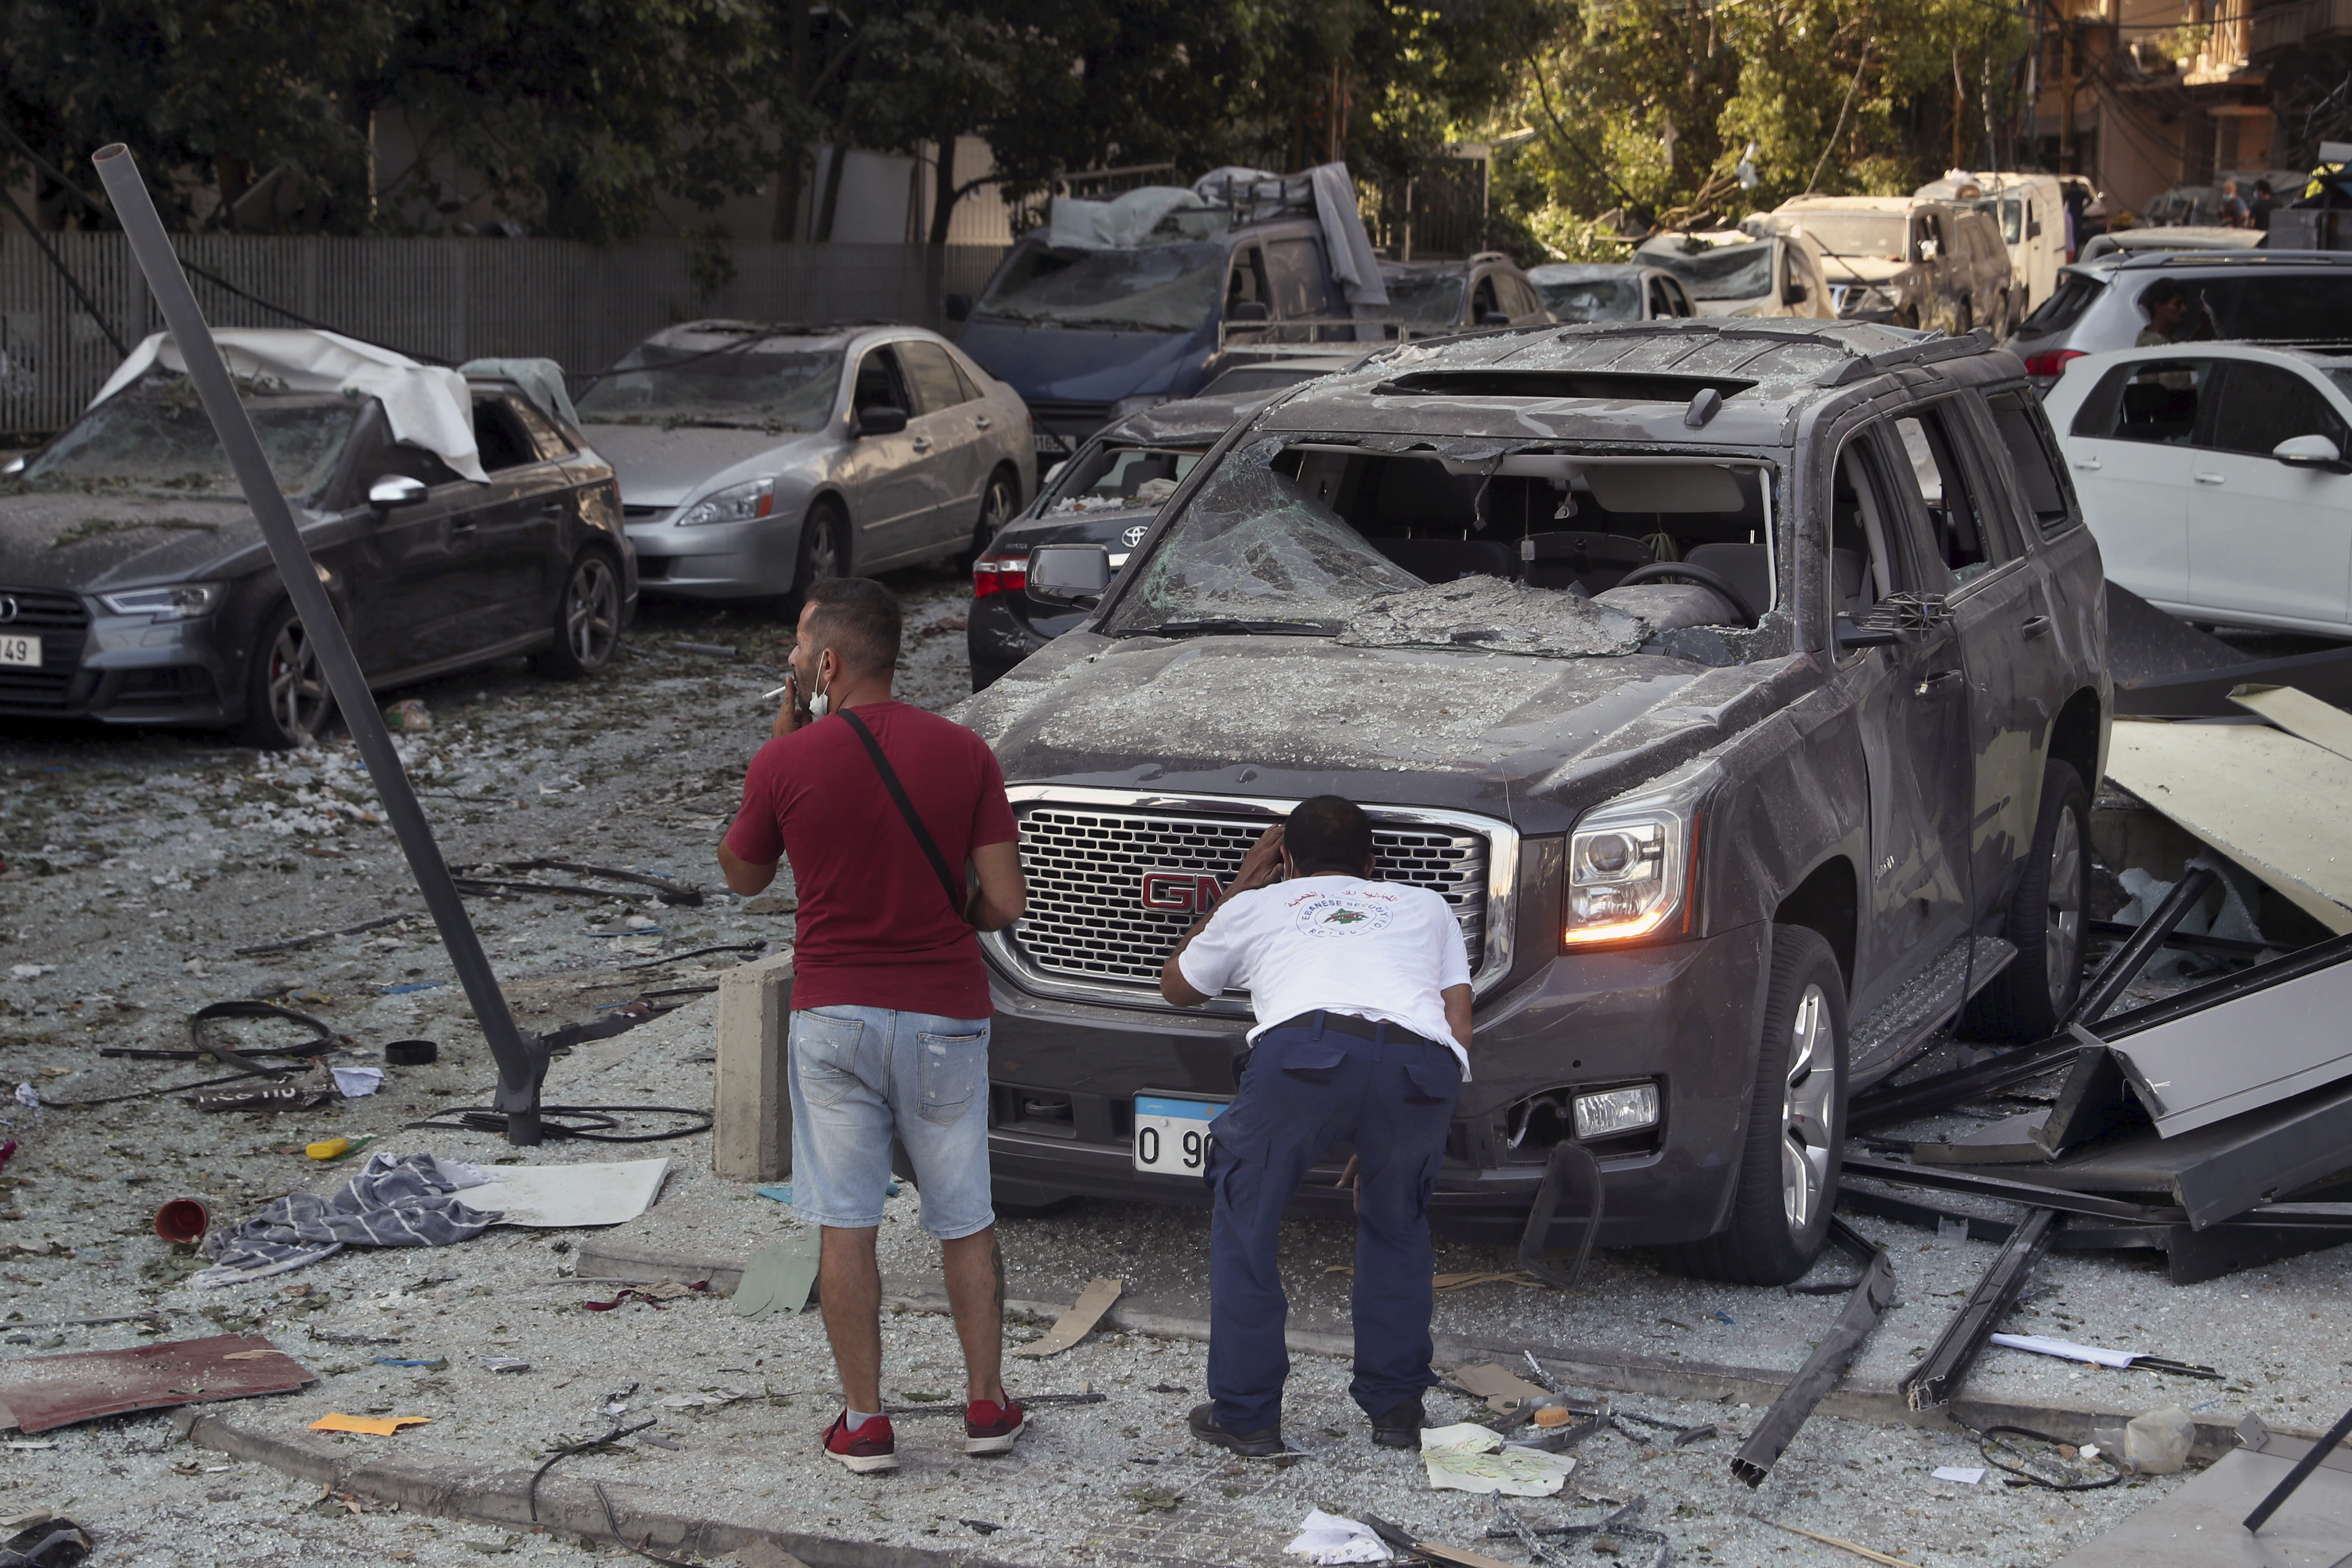 A man inspects his a damaged car after a massive explosion on Tuesday, in Beirut, Lebanon, Wednesday, Aug. 5, 2020. The explosion flattened much of a port and damaged buildings across Beirut, sending a giant mushroom cloud into the sky. In addition to those who died, more than 3,000 other people were injured, with bodies buried in the rubble, officials said. (AP Photo/Bilal Hussein)